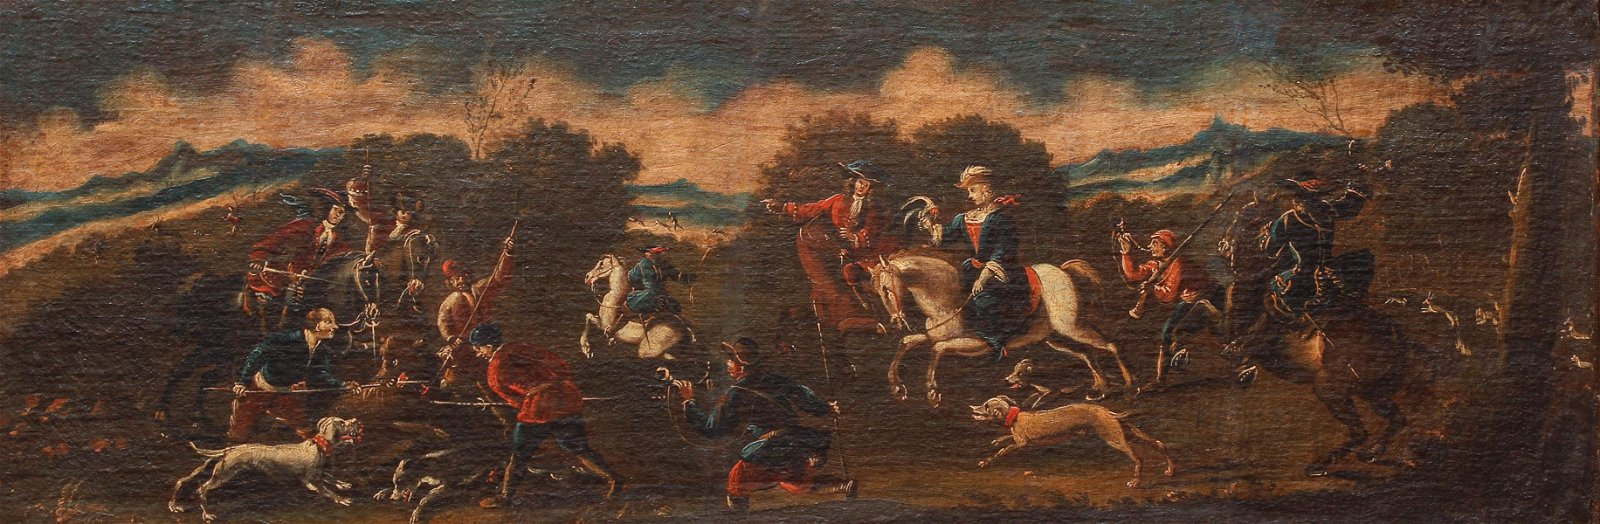 Pair Antique French Hunting Scenes Oil Paintings 18th